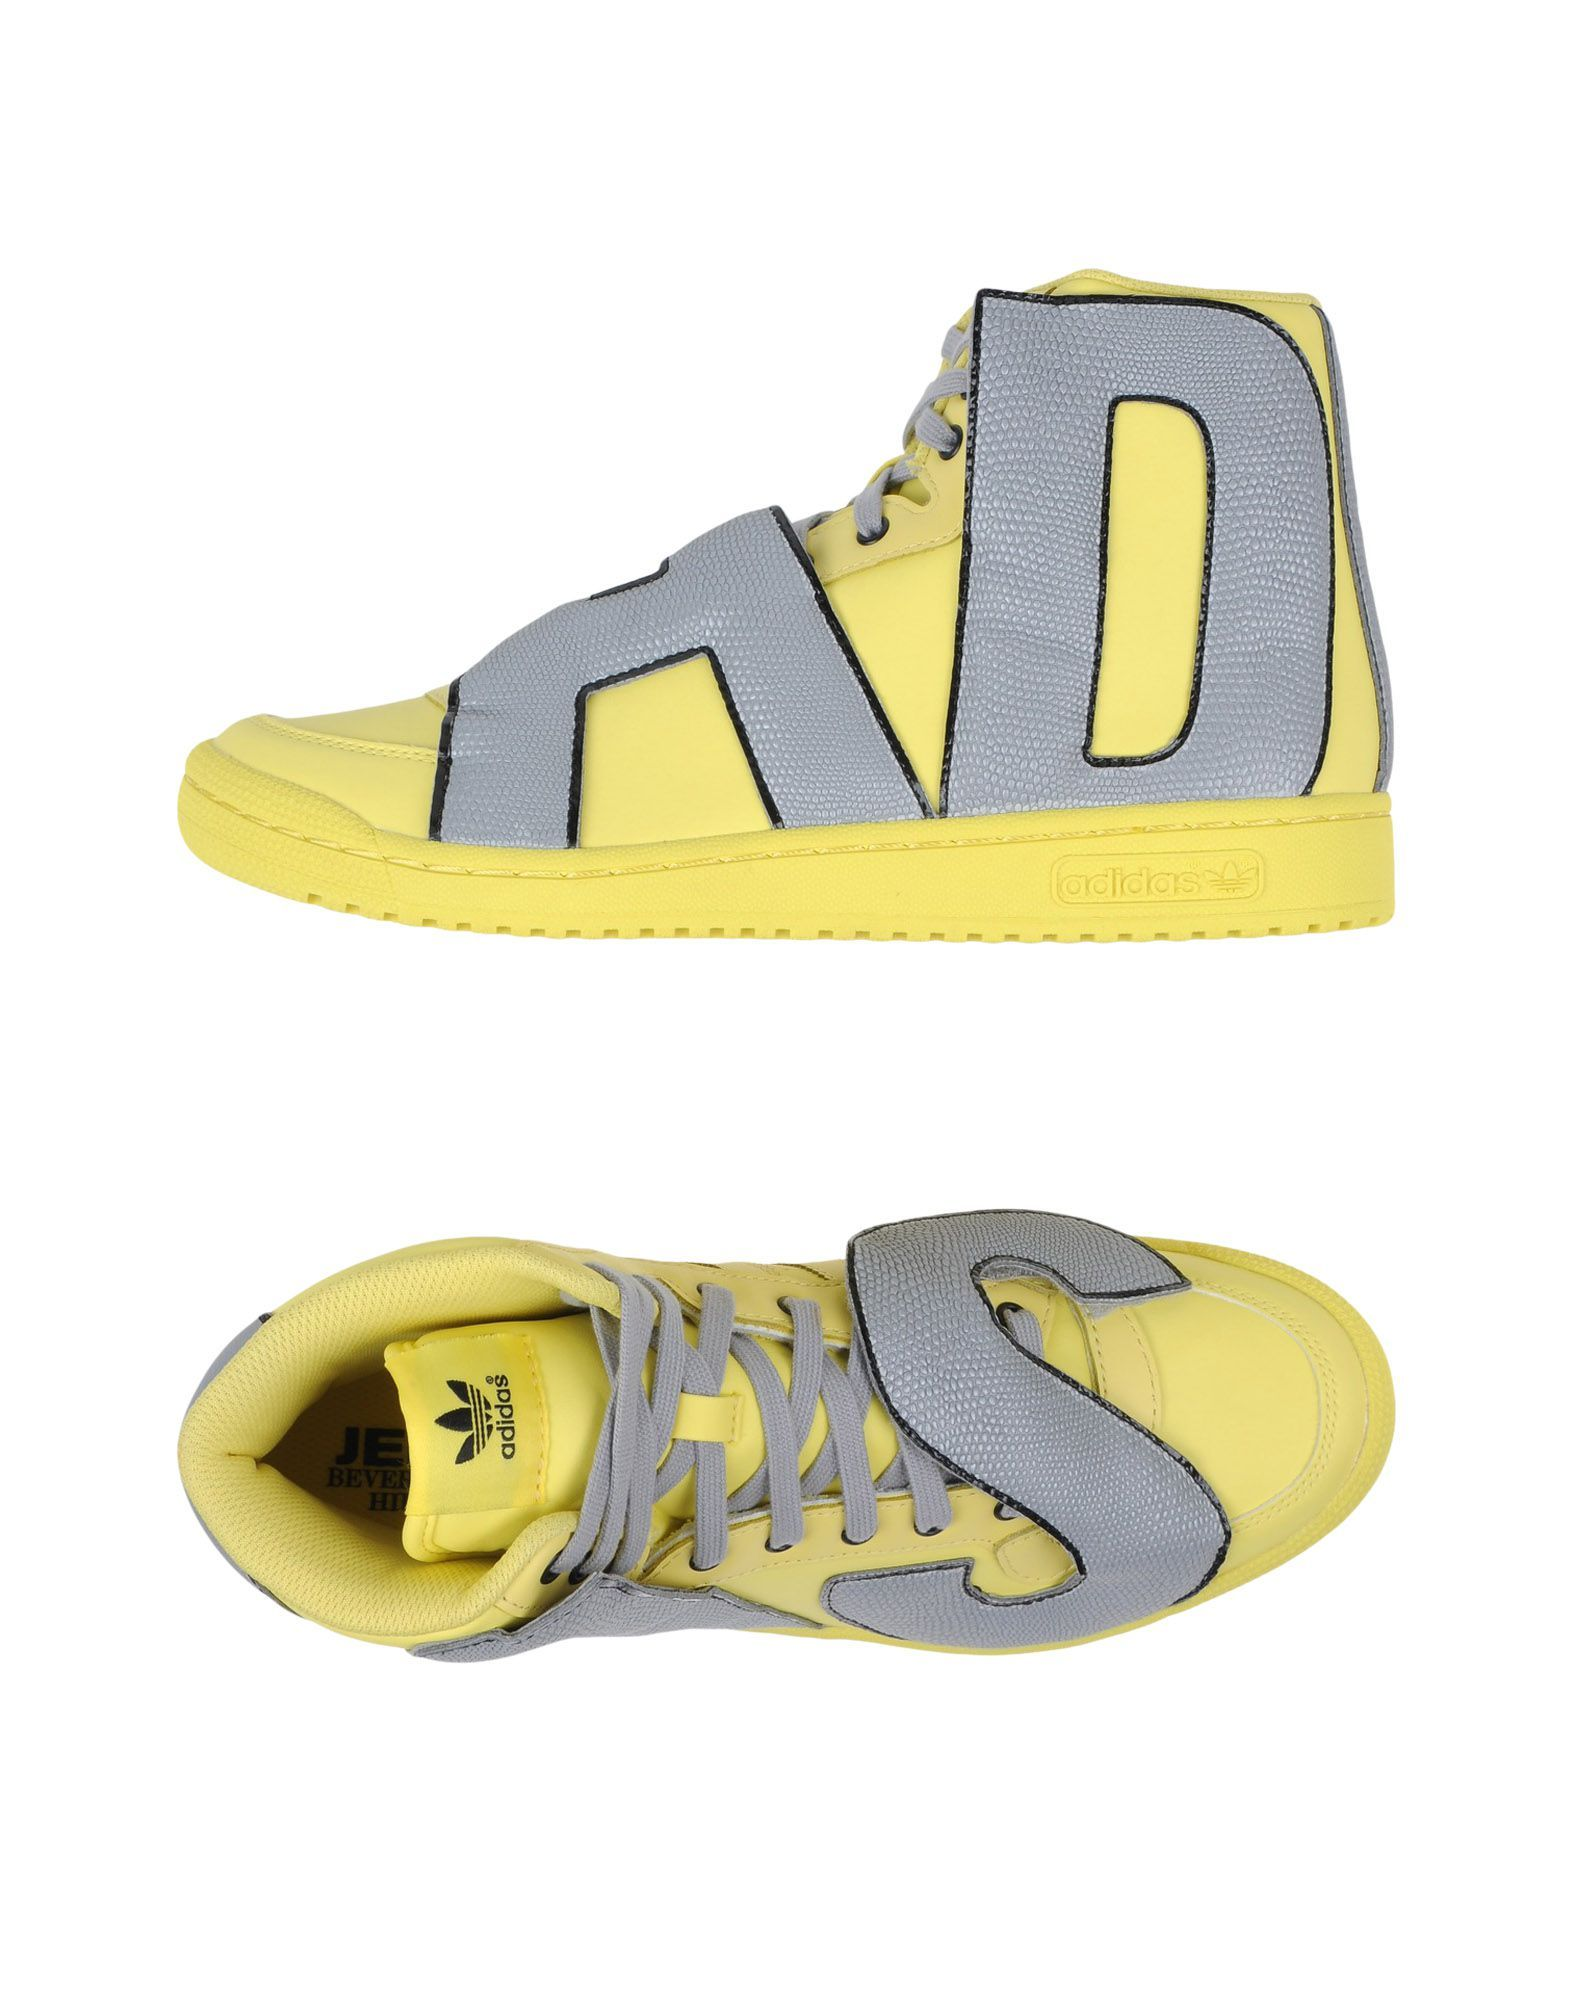 outlet store e83b9 f3580 Adidas Originals By Jeremy Scott Js Letters Refl - High-Tops - Men Adidas  Originals By Jeremy Scott High-Tops online on YOOX United States - 44961181